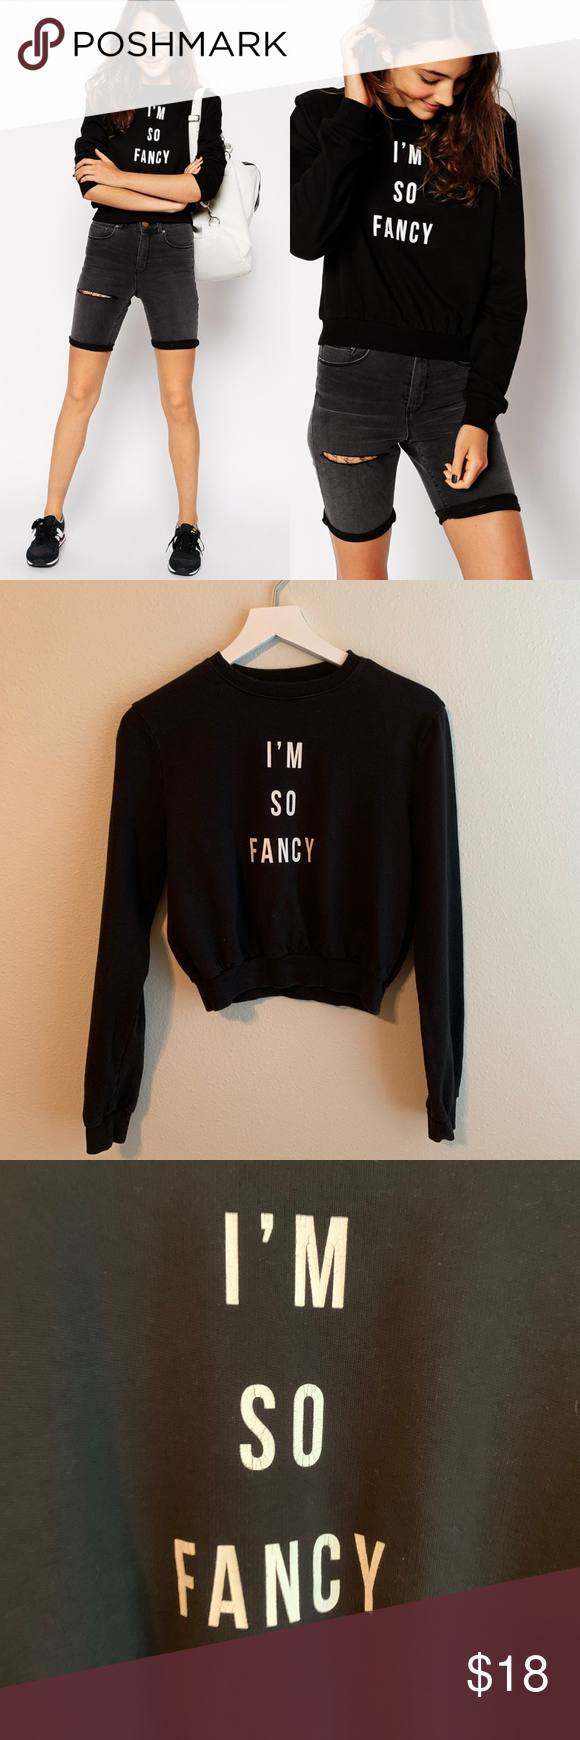 ASOS Cropped Sweatshirt with I'm So Fancy Print used in